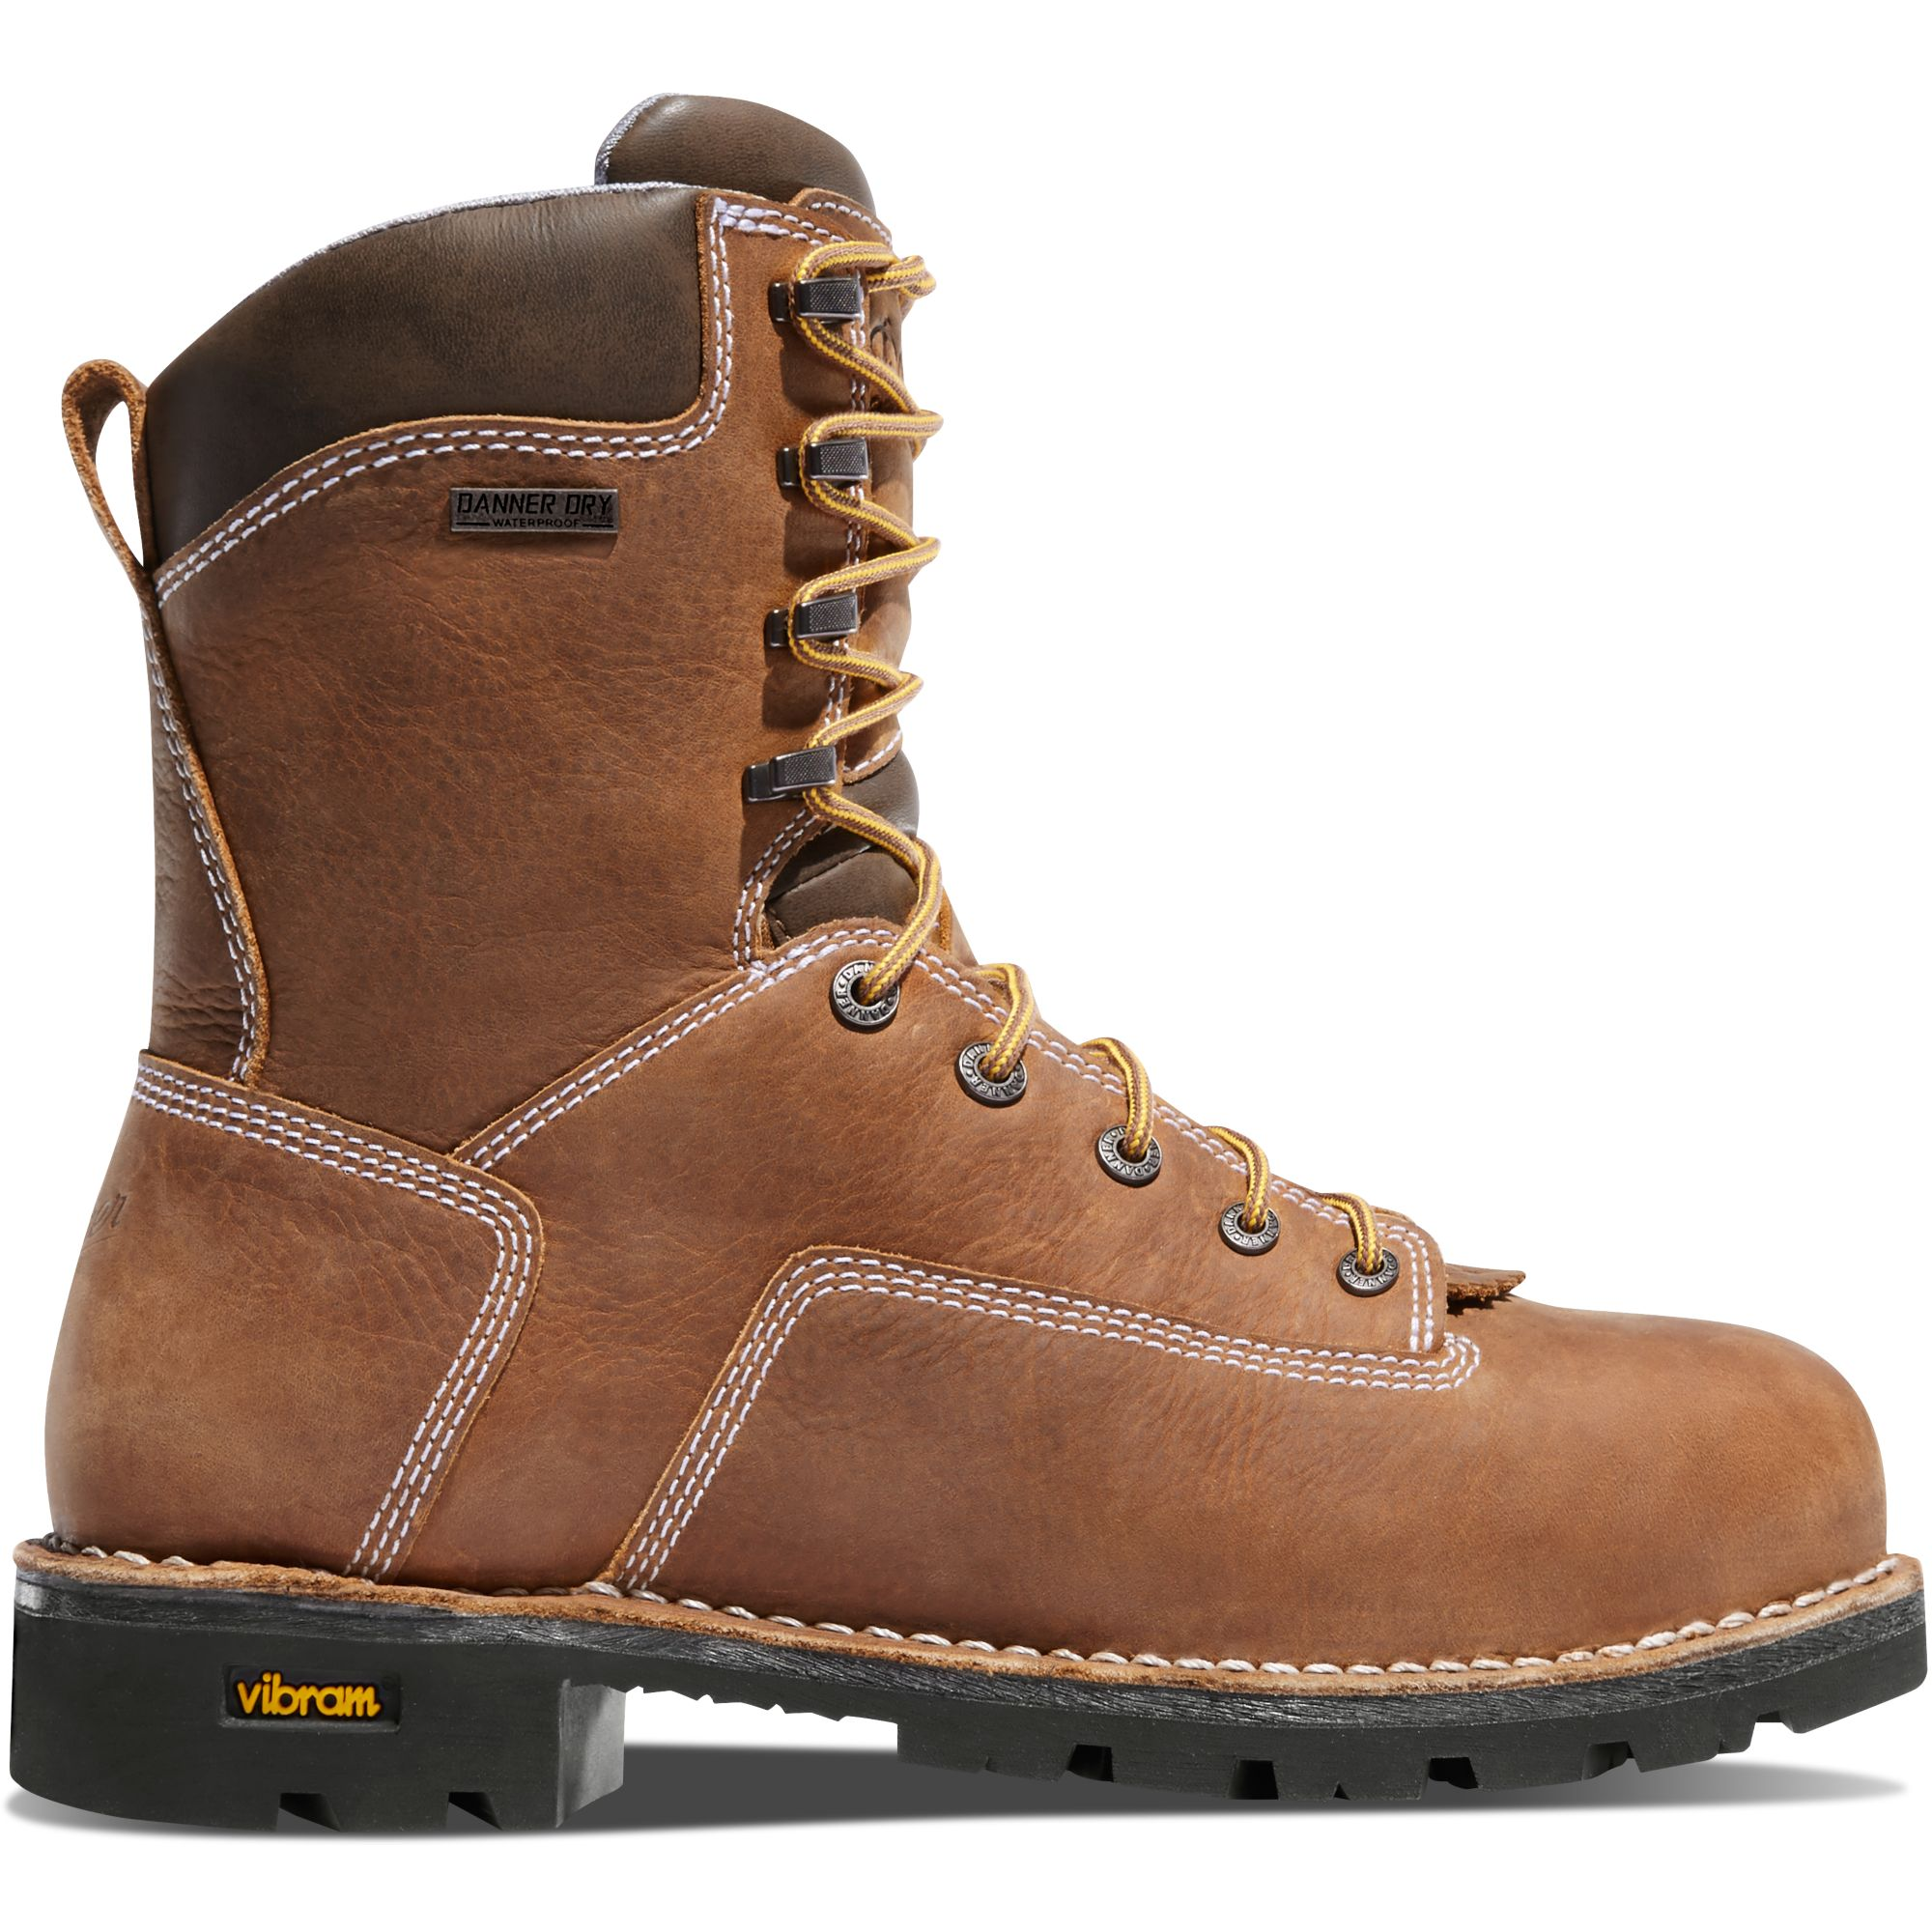 work boots wear comforter shoes best to the improb mens thorogood for comfortable men